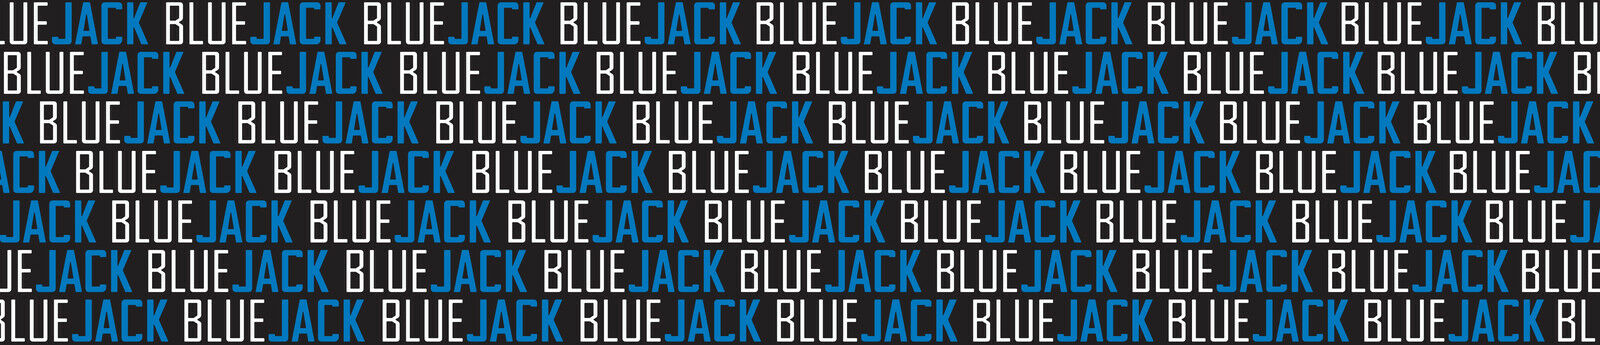 Bluejack Clothing Company